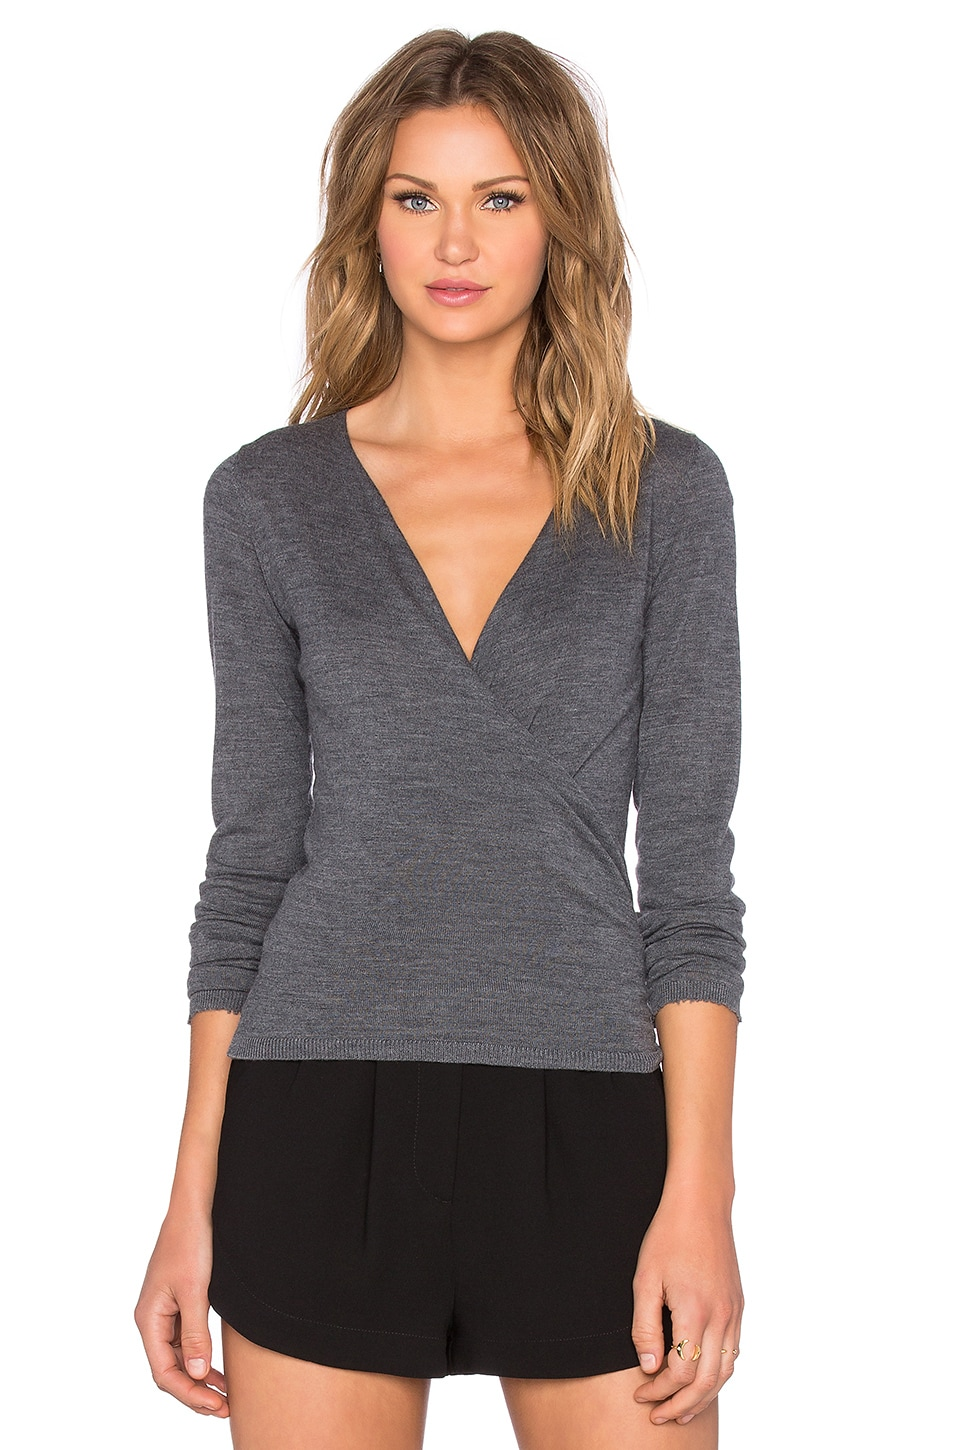 Wrap Cardigan by The Kooples